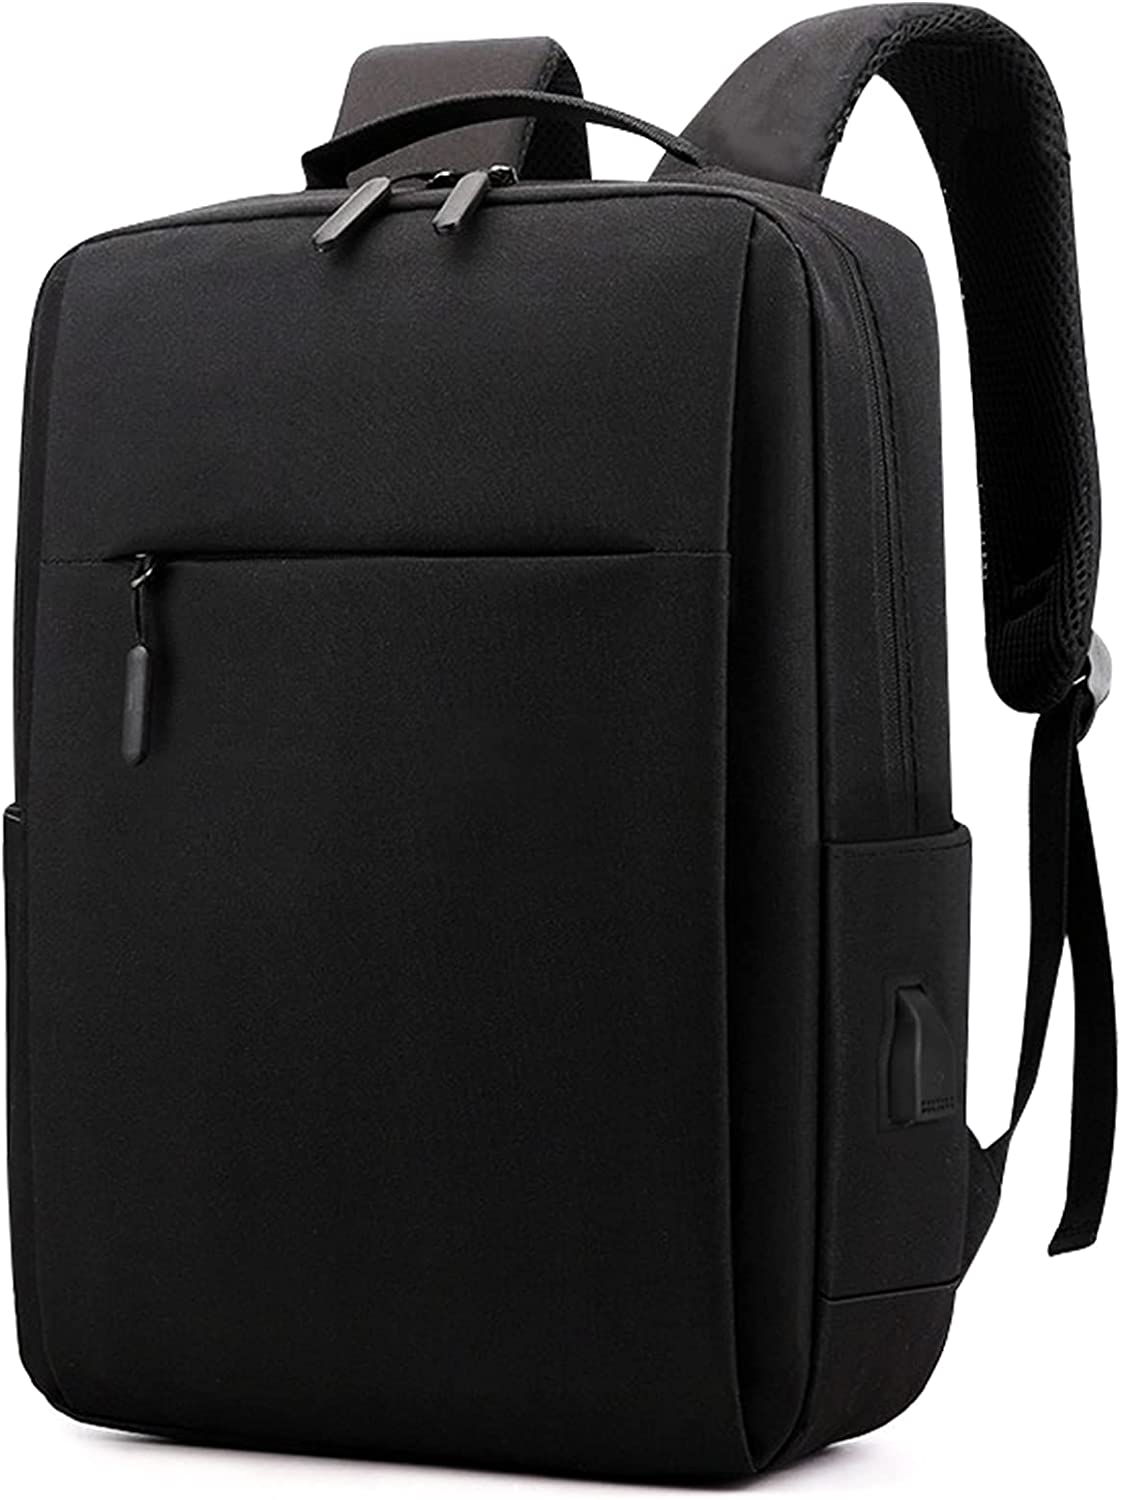 RioGree Laptop Backpack 15.6 Inch Credence Luxury Access School Travel Supplies